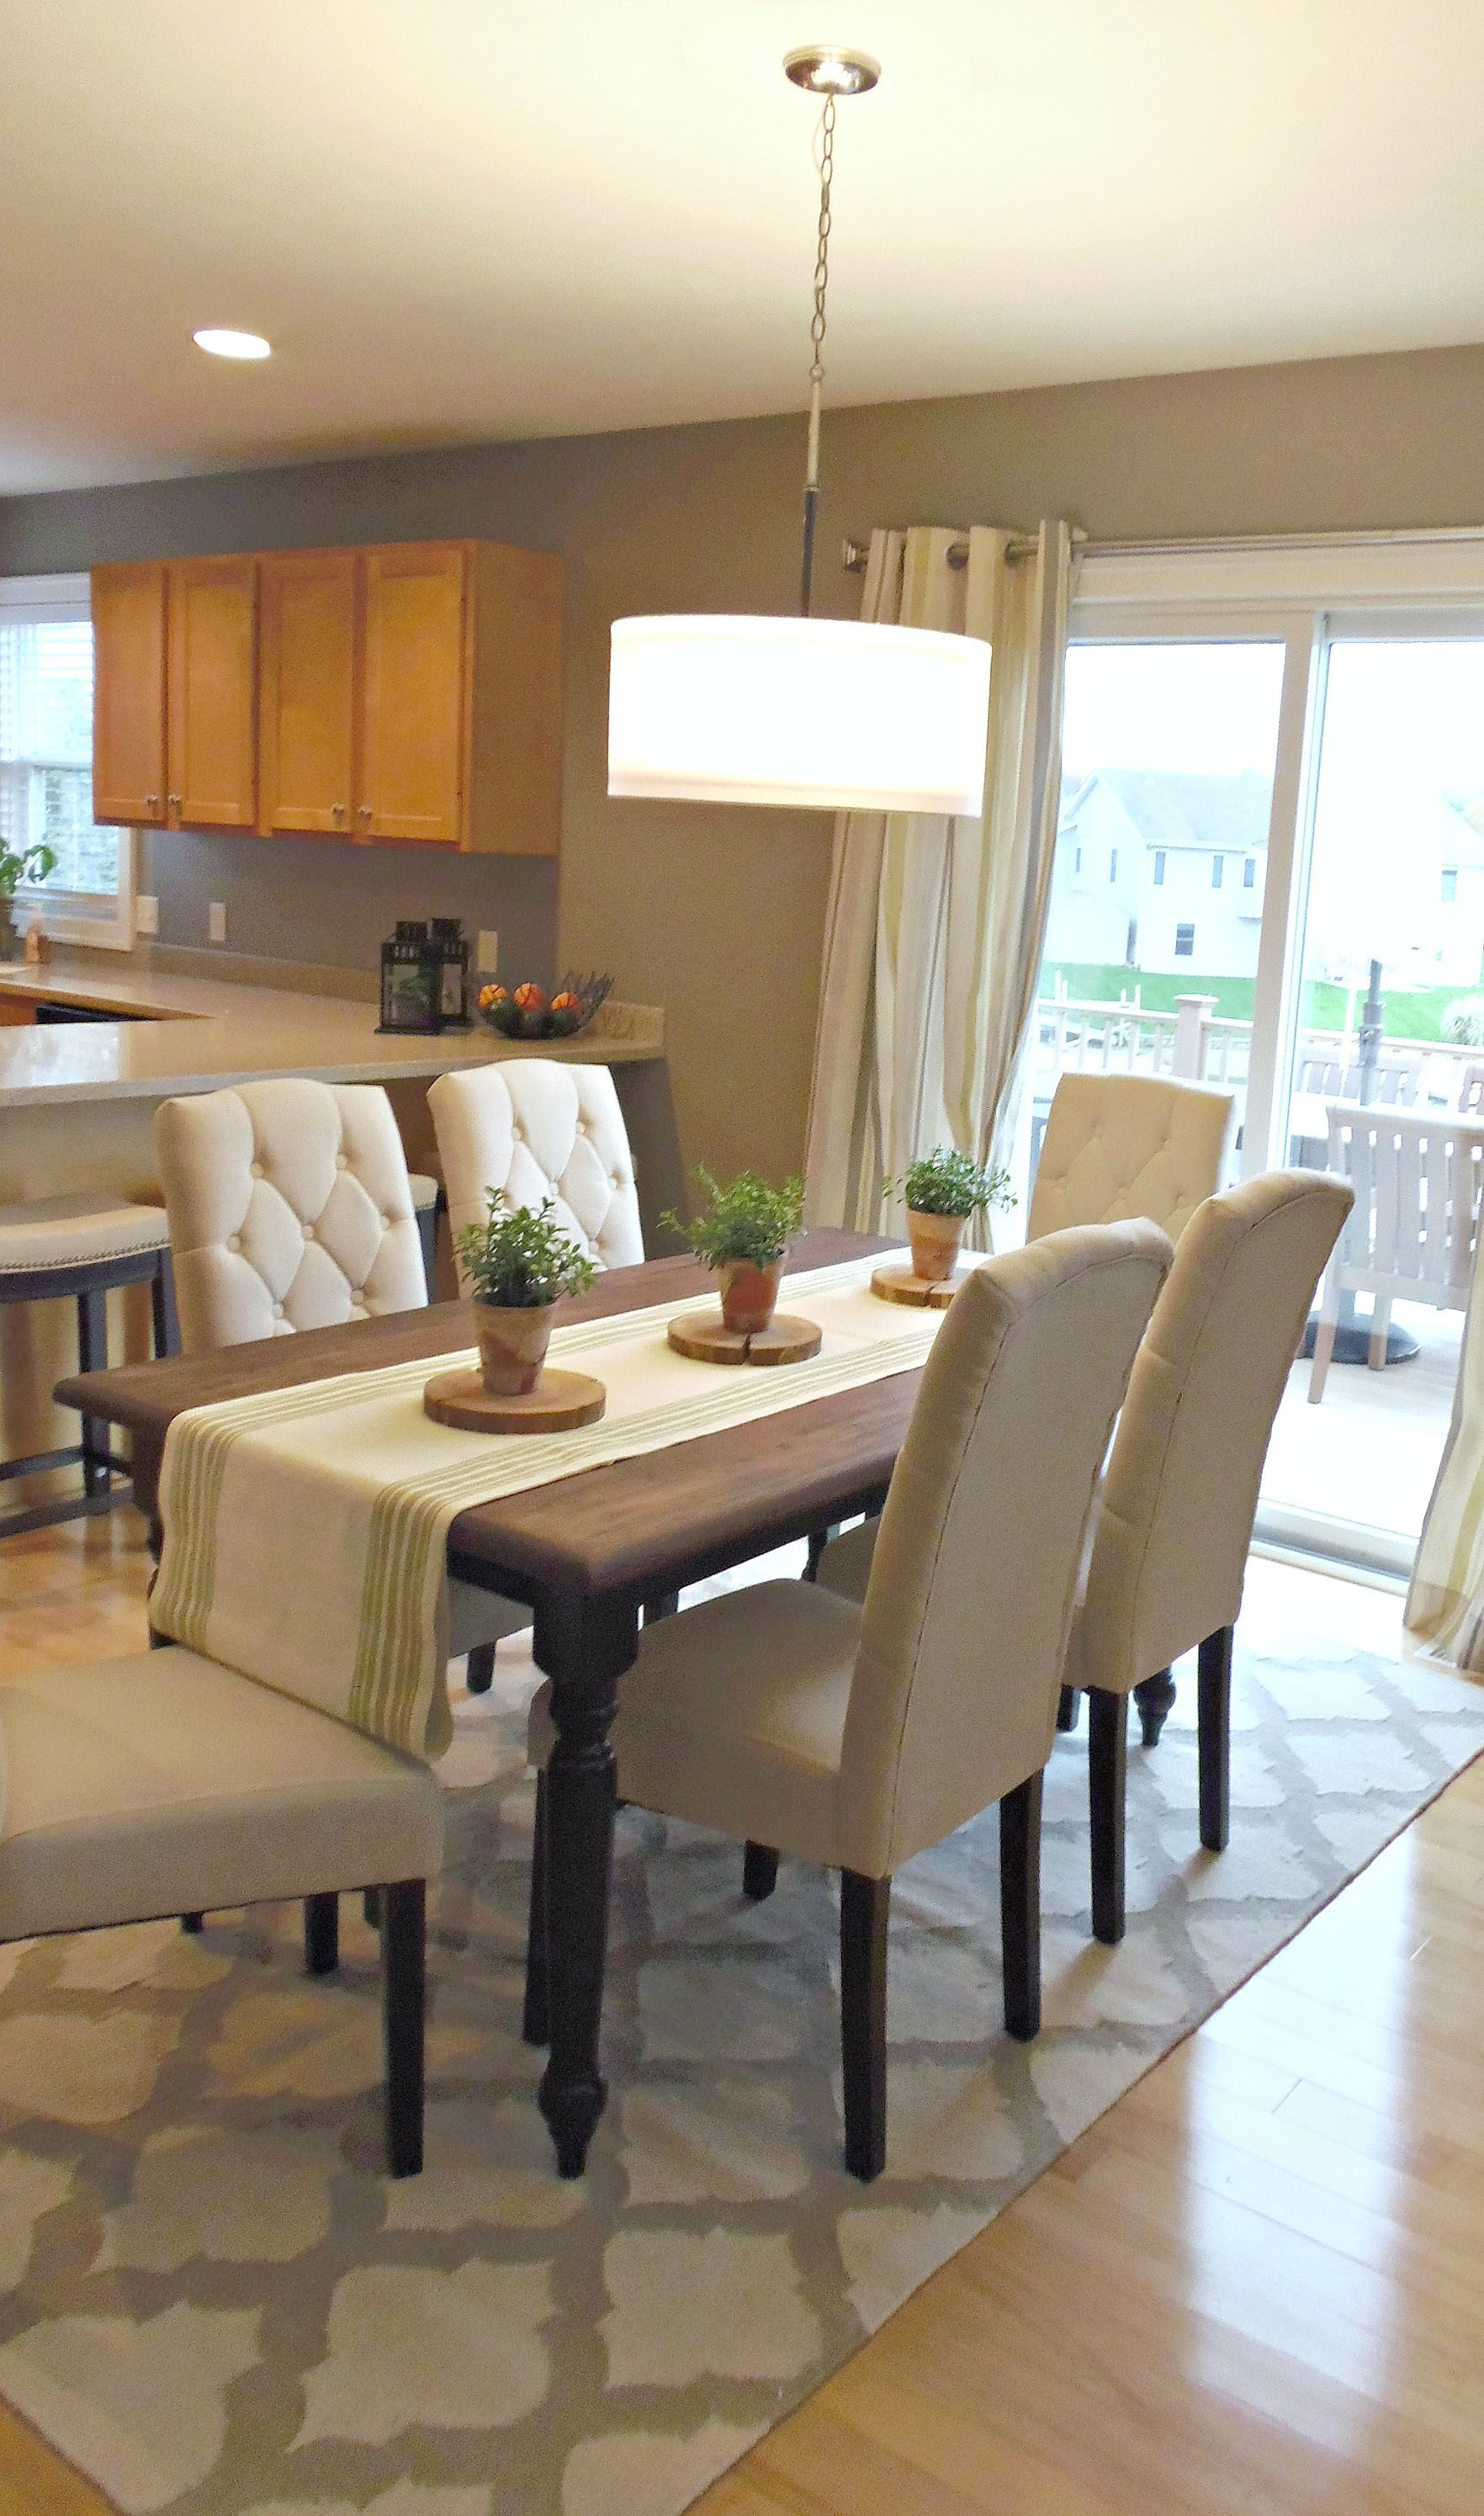 Over 860 Different Kitchen Design Ideas Http Www Pinterest Com Njestates Dining Room Small Table Set Centerpieces